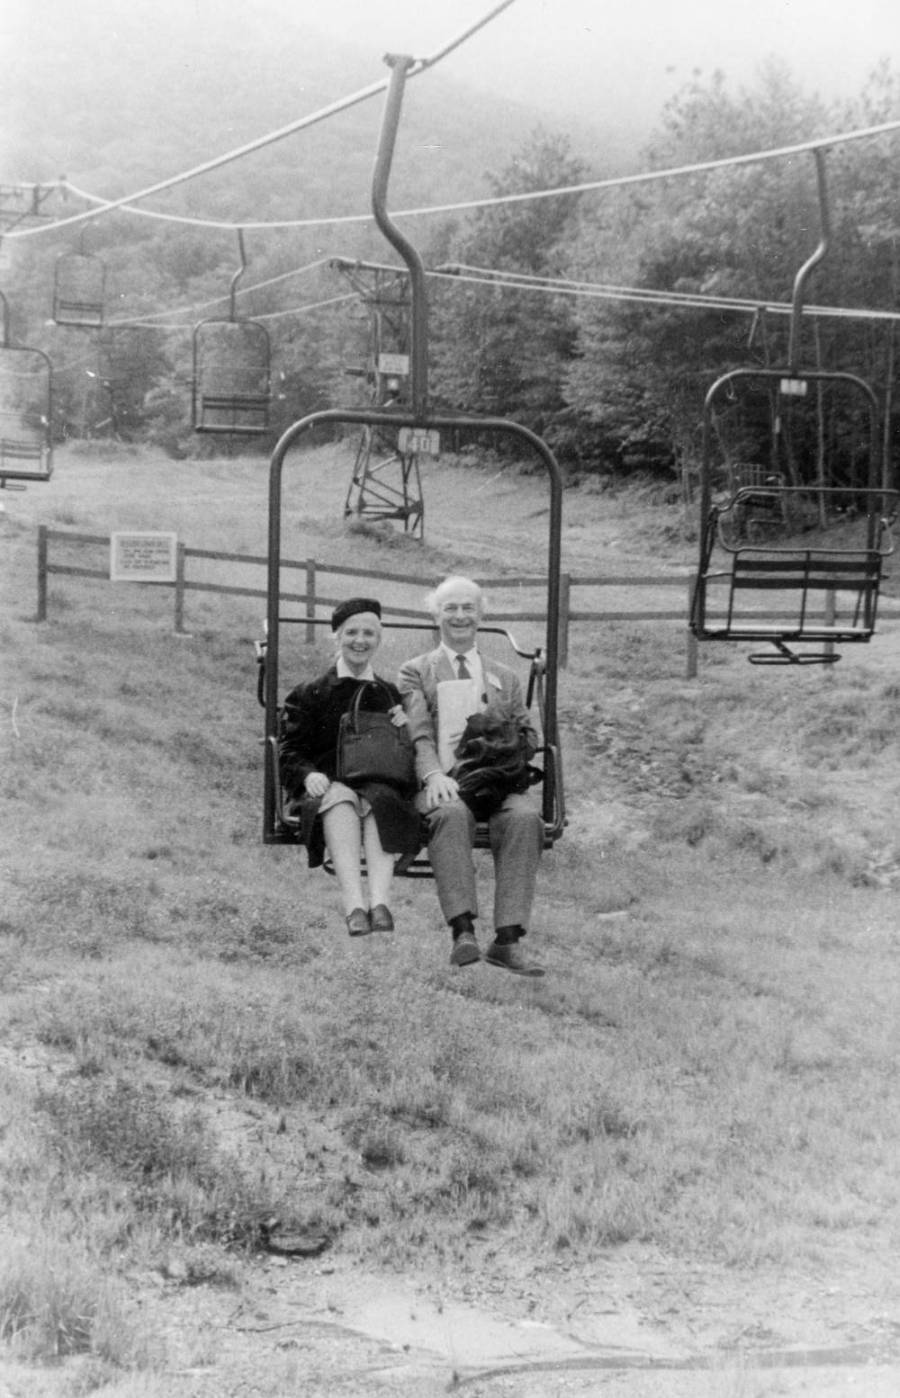 Ava Helen and Linus Pauling riding a ski lift at the seventh annual Pugwash Conference. Stowe, Vermont.